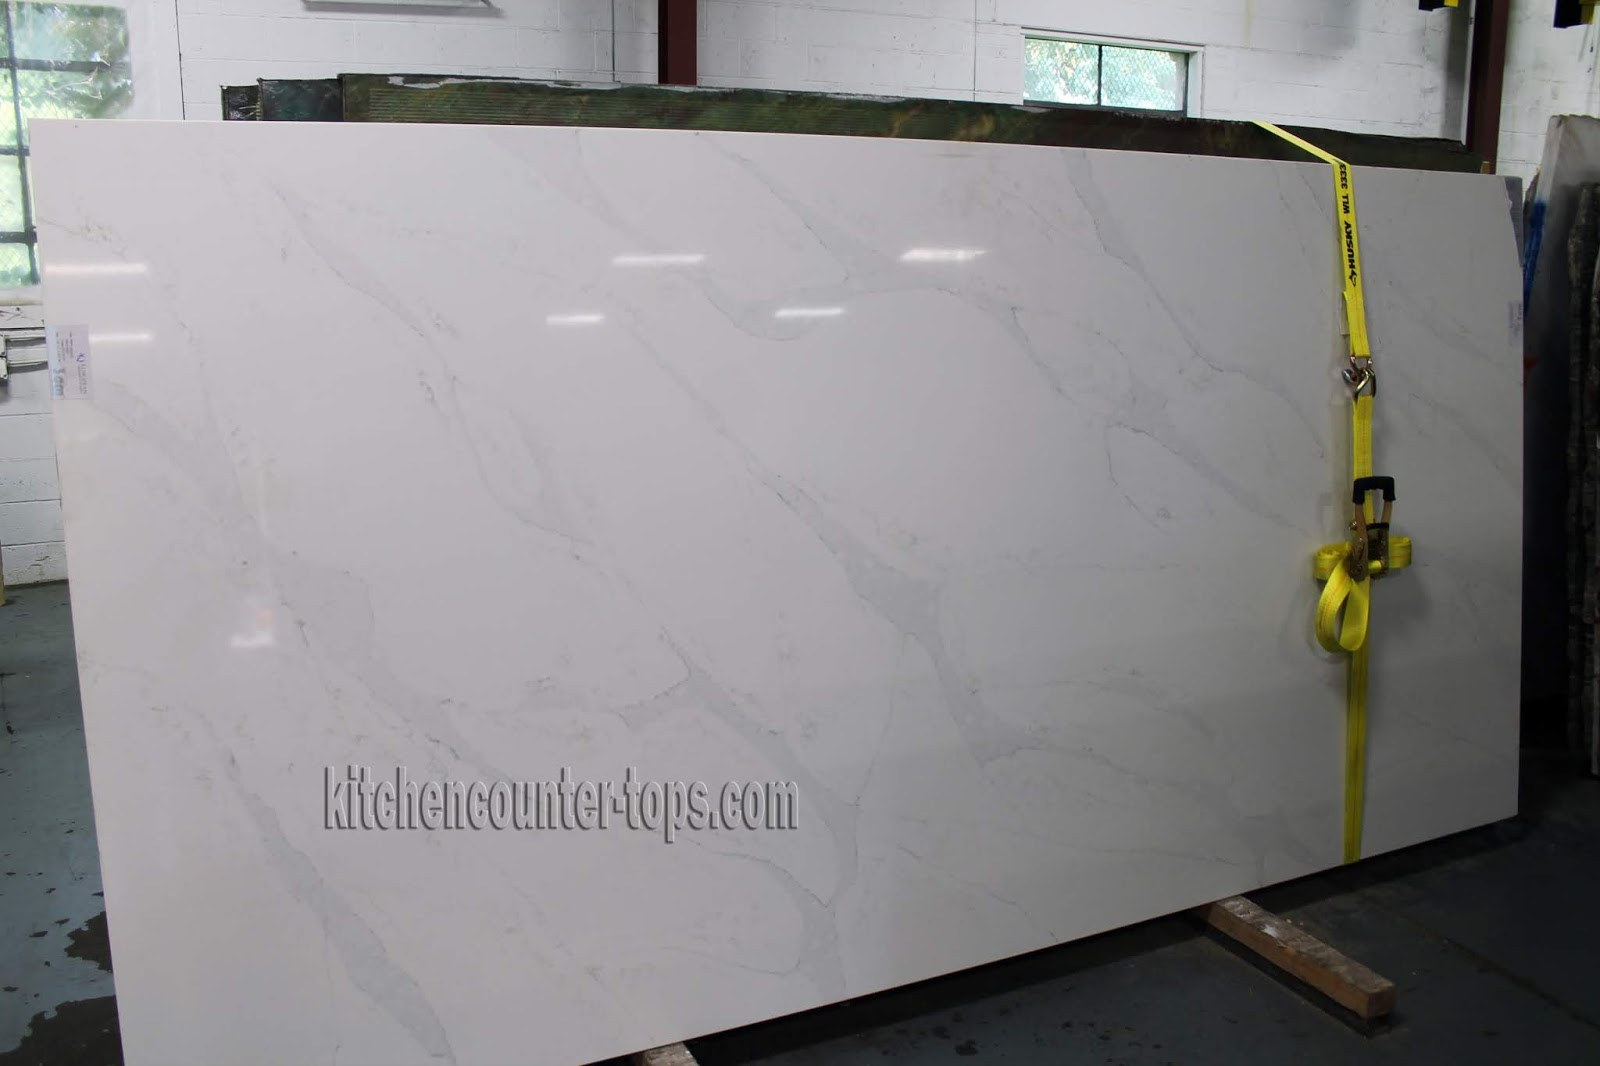 White Quartz Countertops That Look Like Marble Countertops For Kitchen